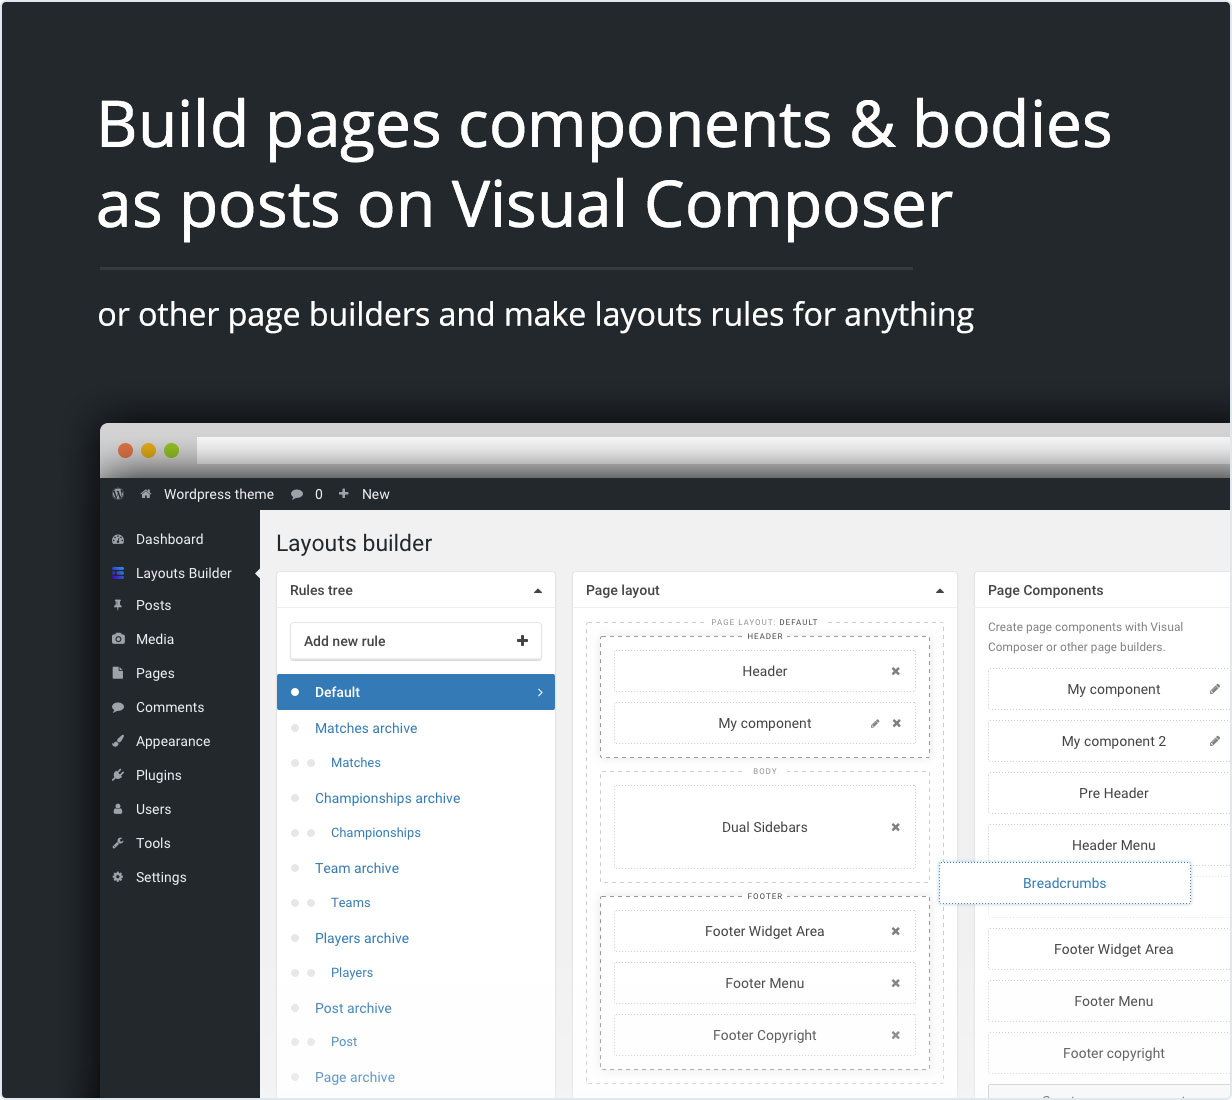 Build pages components & bodies as posts on Visual Composer or other page builders and make layouts rules for anything.